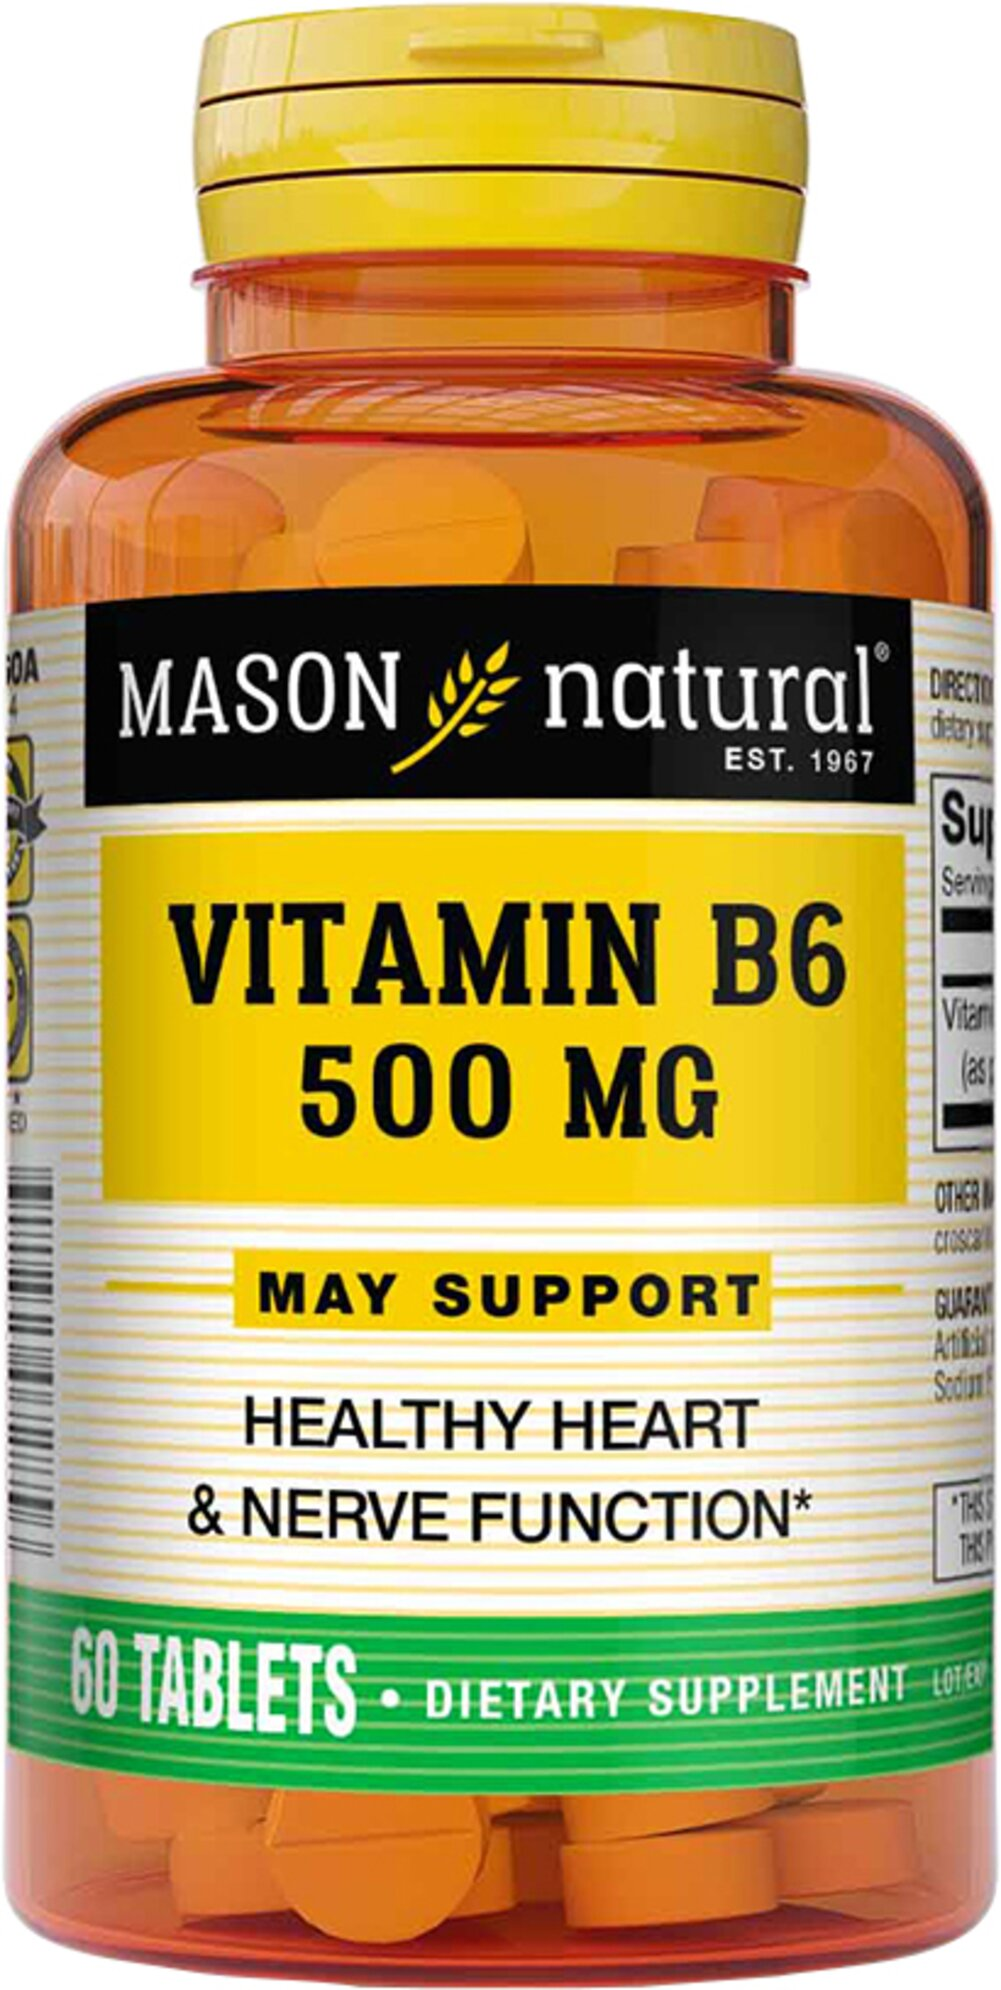 Vitamin B-6 500 mg <p><strong>From the Manufacturer's Label</strong>:</p><p>B-6 500mg  is manufactured by Mason Naturals</p><p></p> 60 Tablets 500 mg $7.99